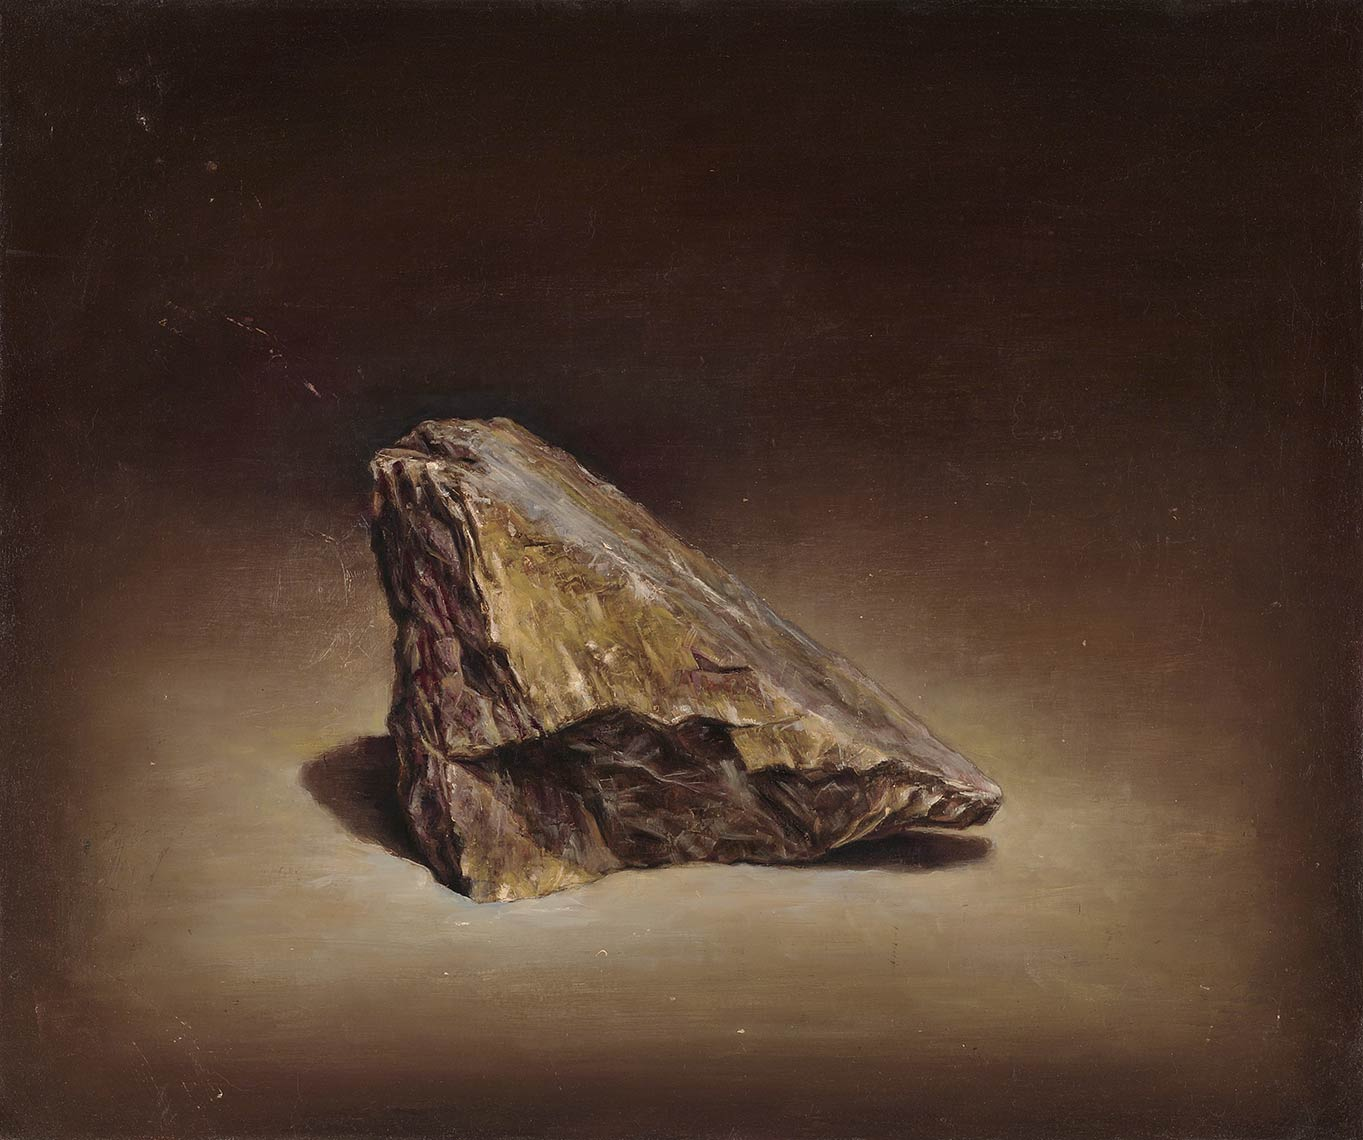 Stone_2009_oil-on-canvas_58x70_23x28_Available